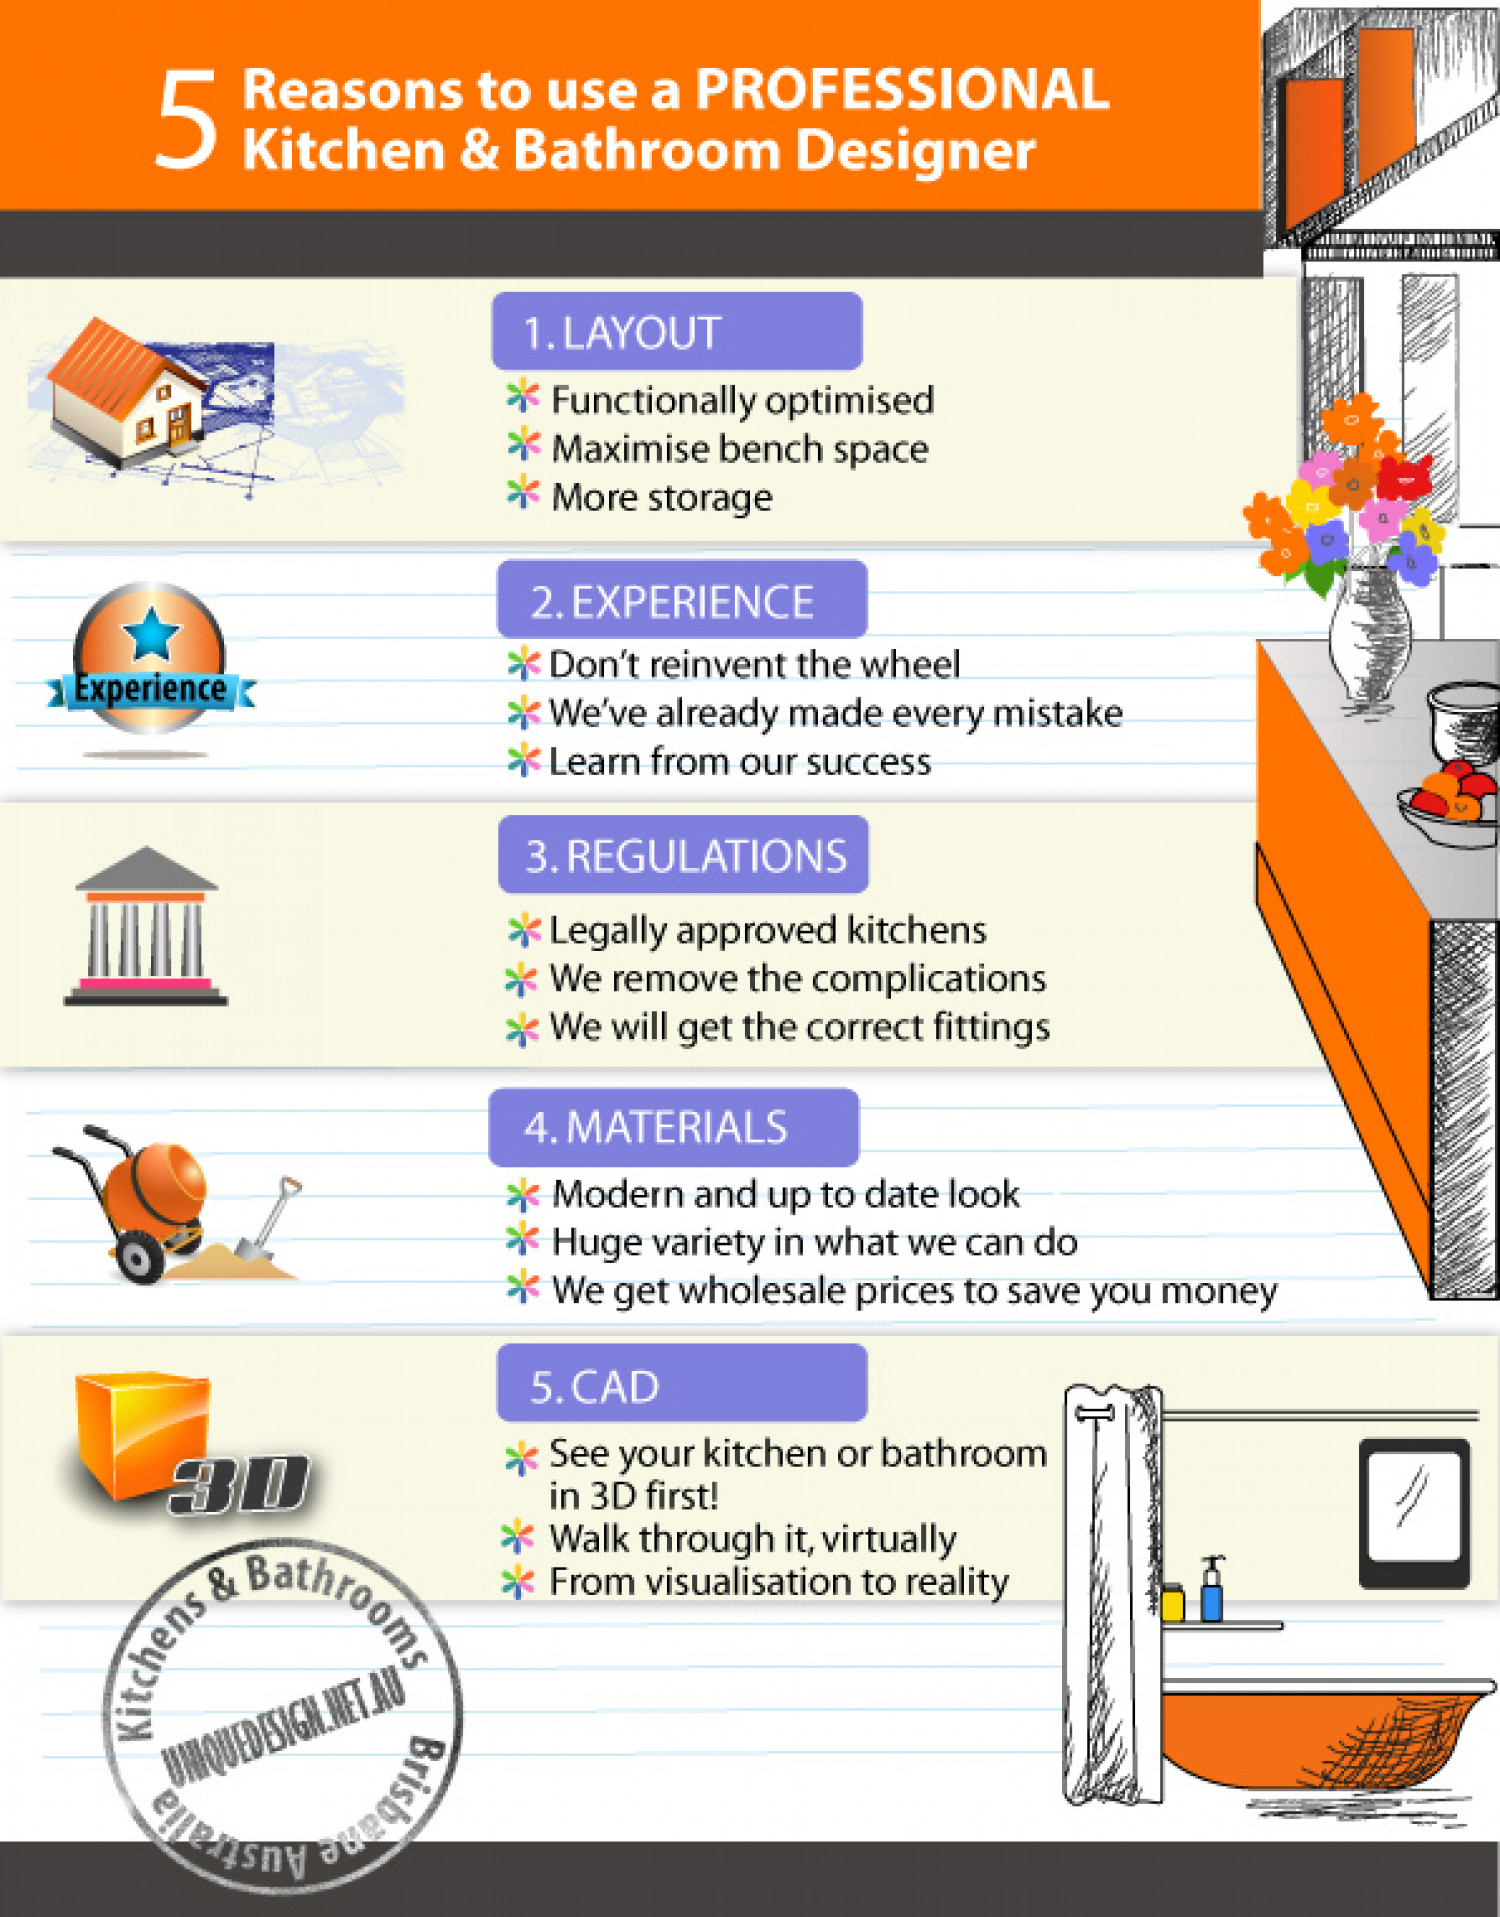 5 Reasons to use a PROFESSIONAL kitchen and bathroom designer Infographic